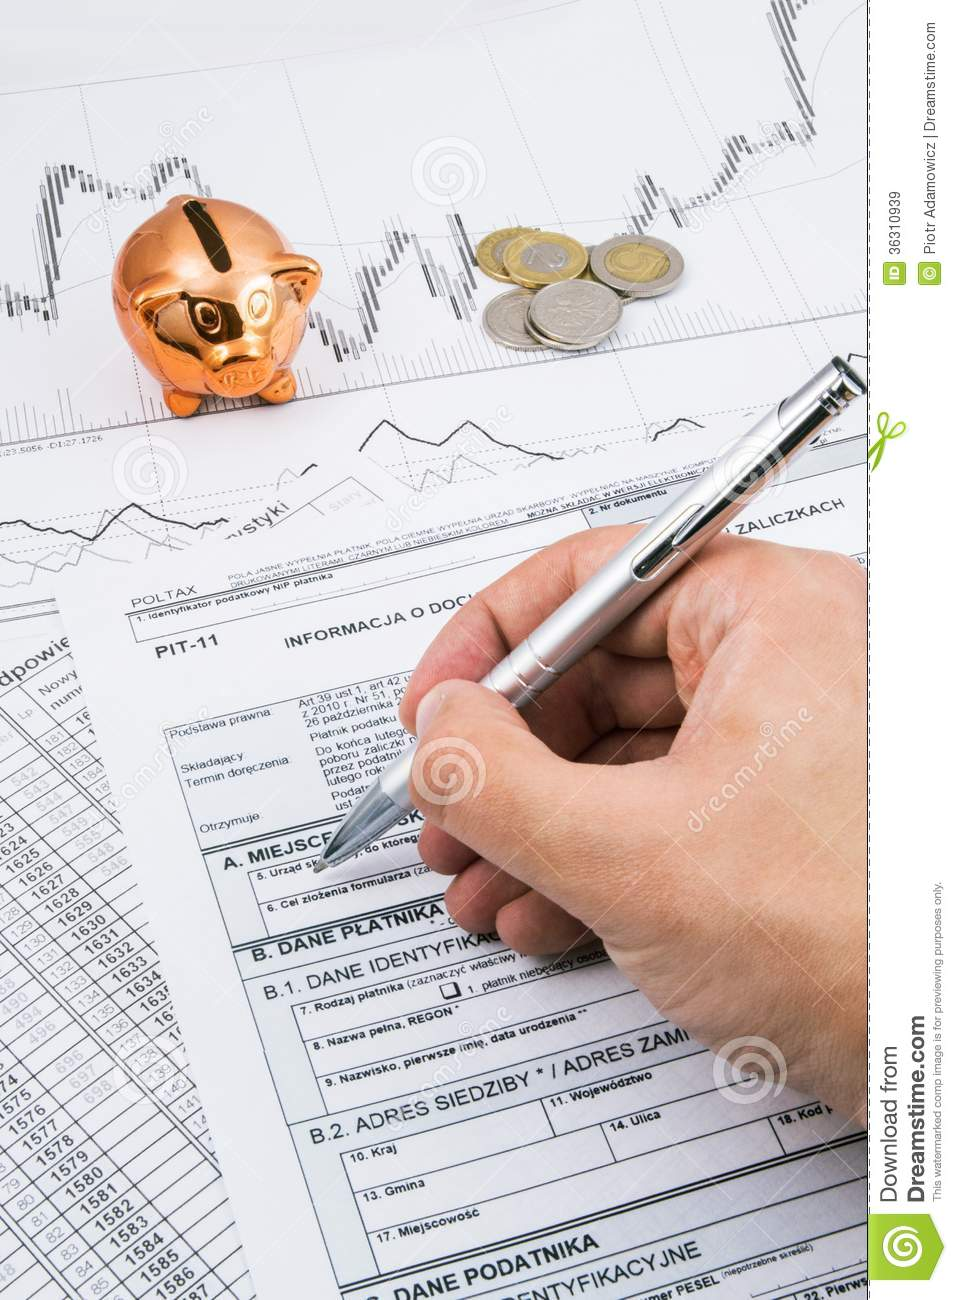 Man hand filling PIT-11 polish income tax forms